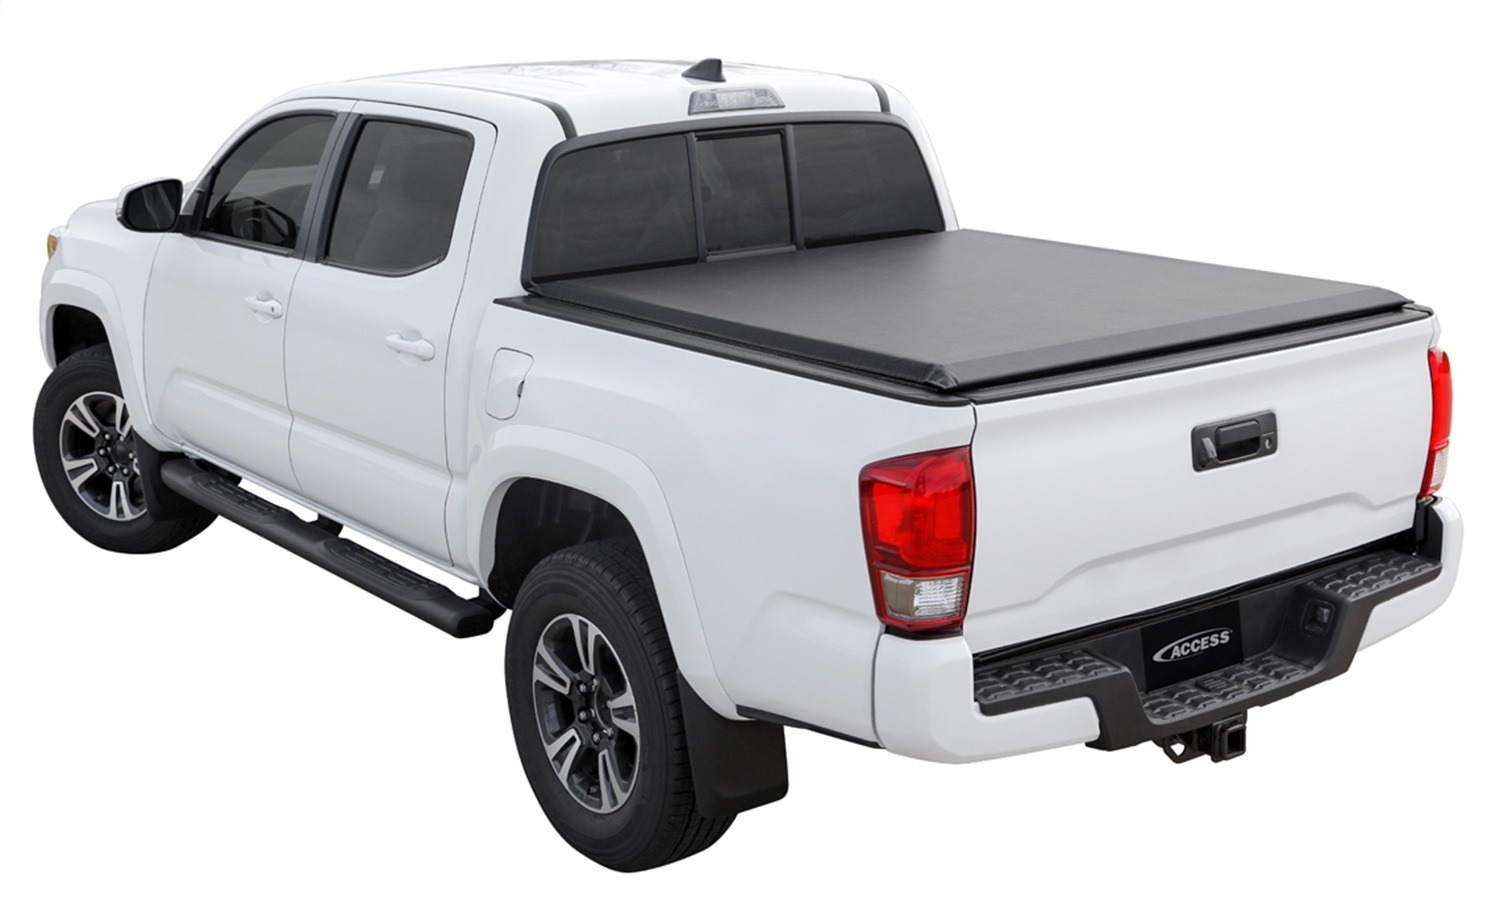 Access Cover 15189 ACCESS Original Roll-Up Cover Fits 05-15 Tacoma